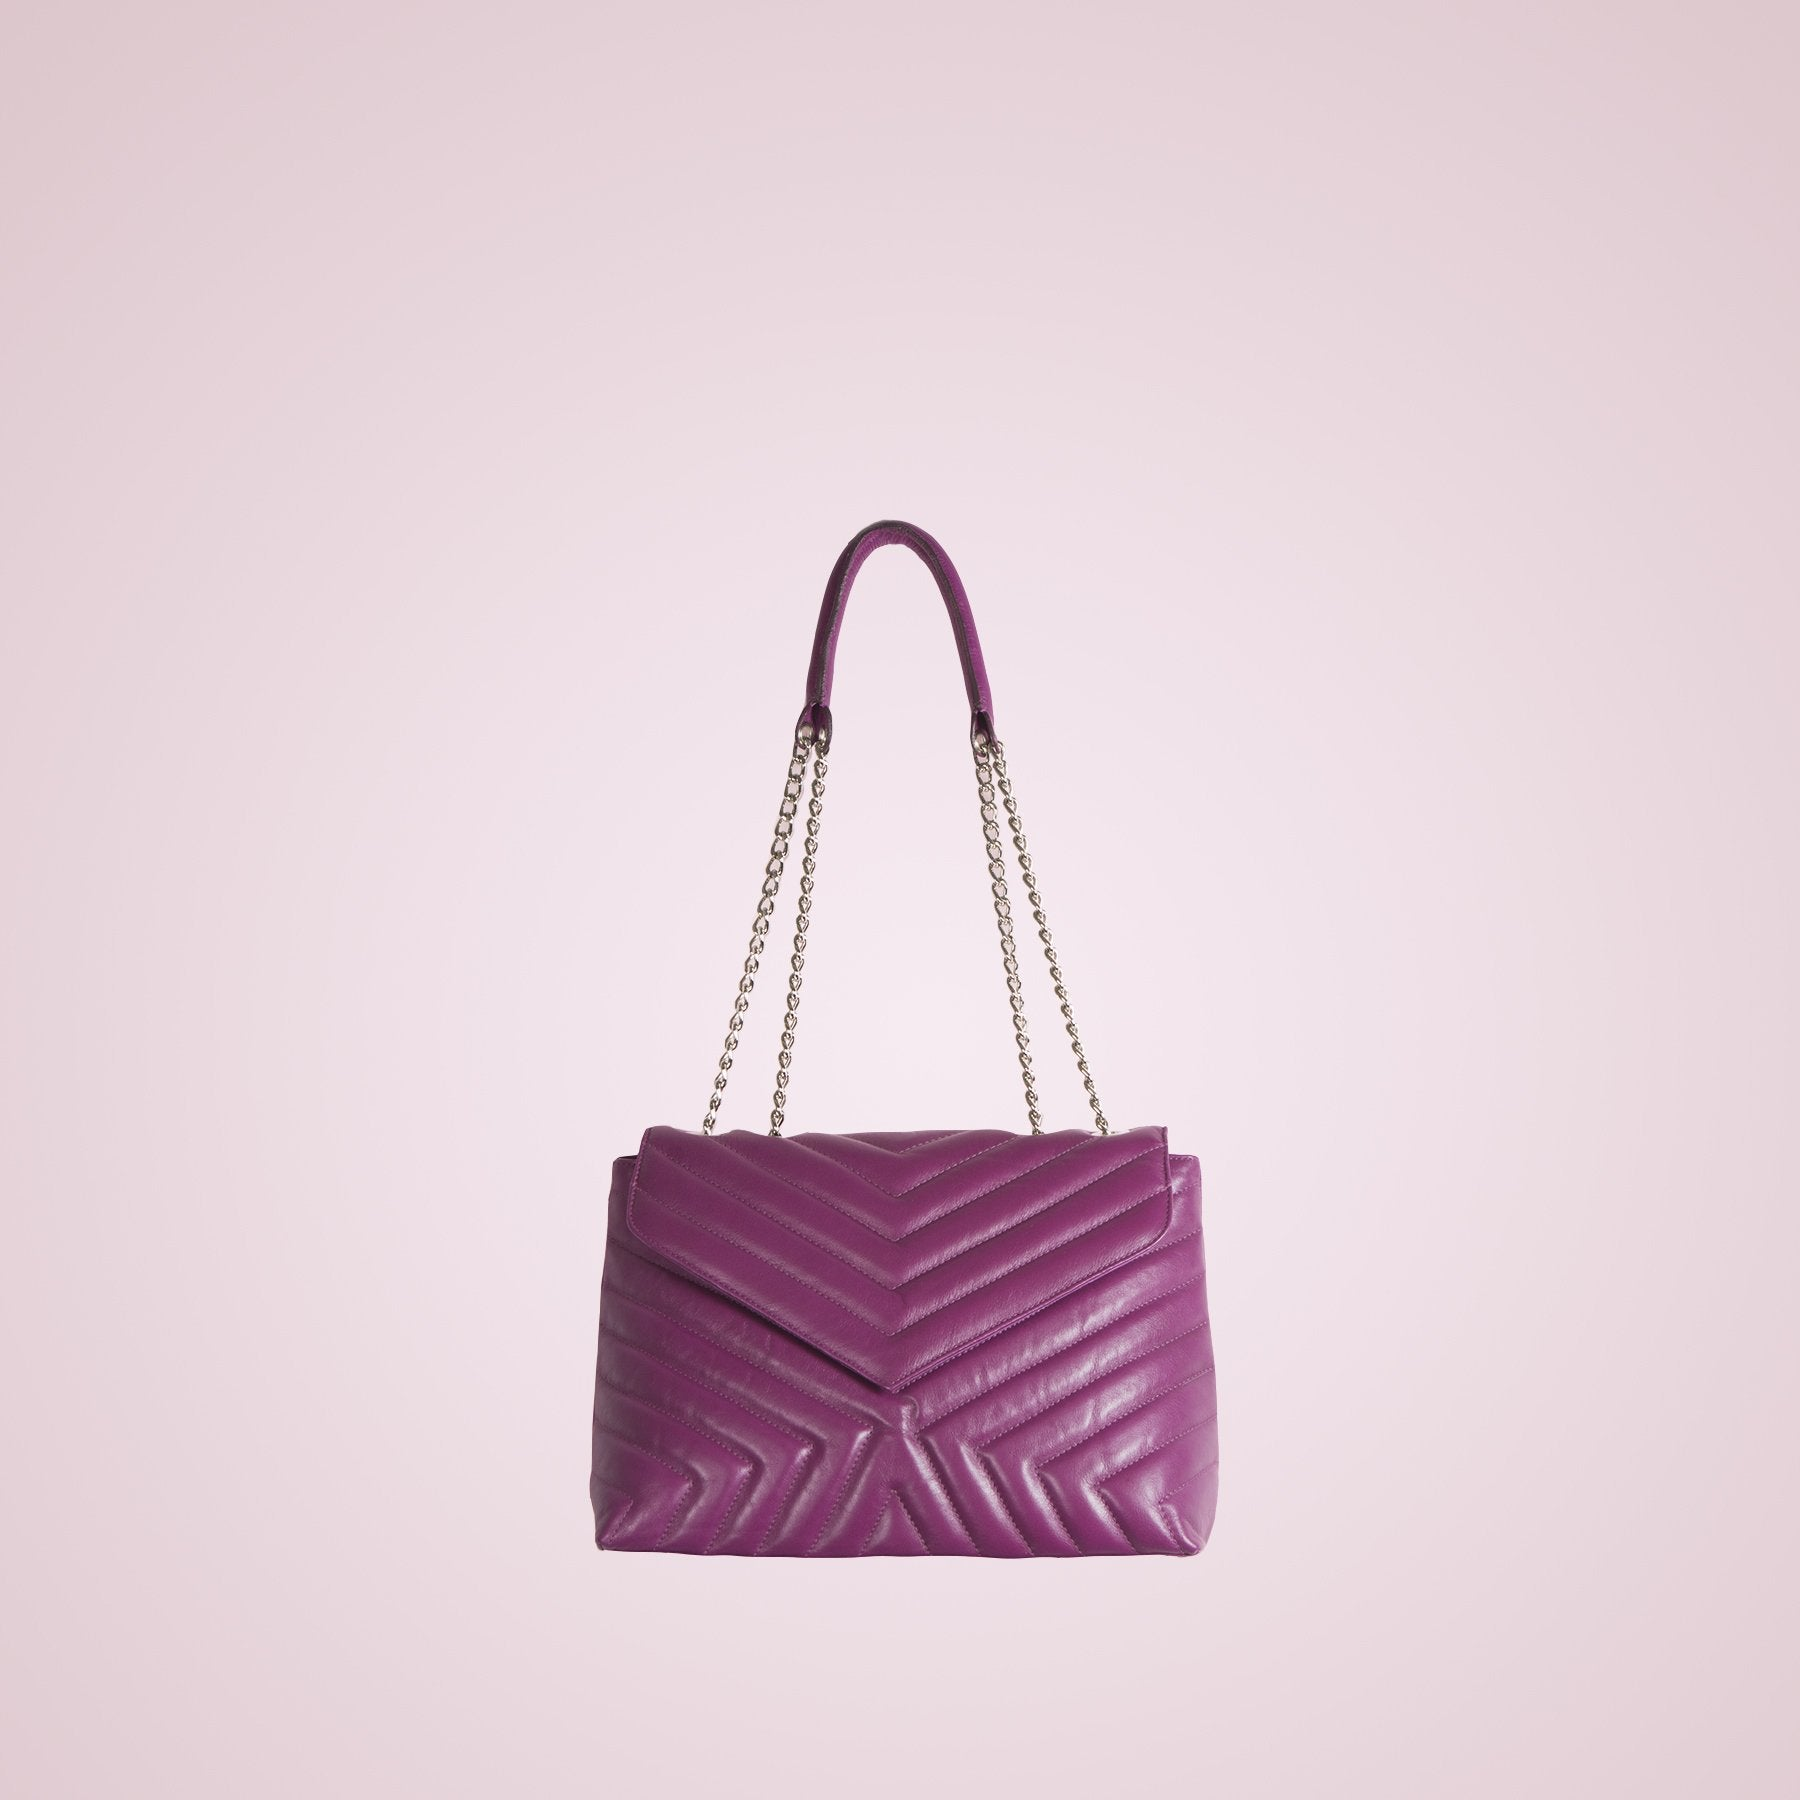 Melpo Light Purple Leather